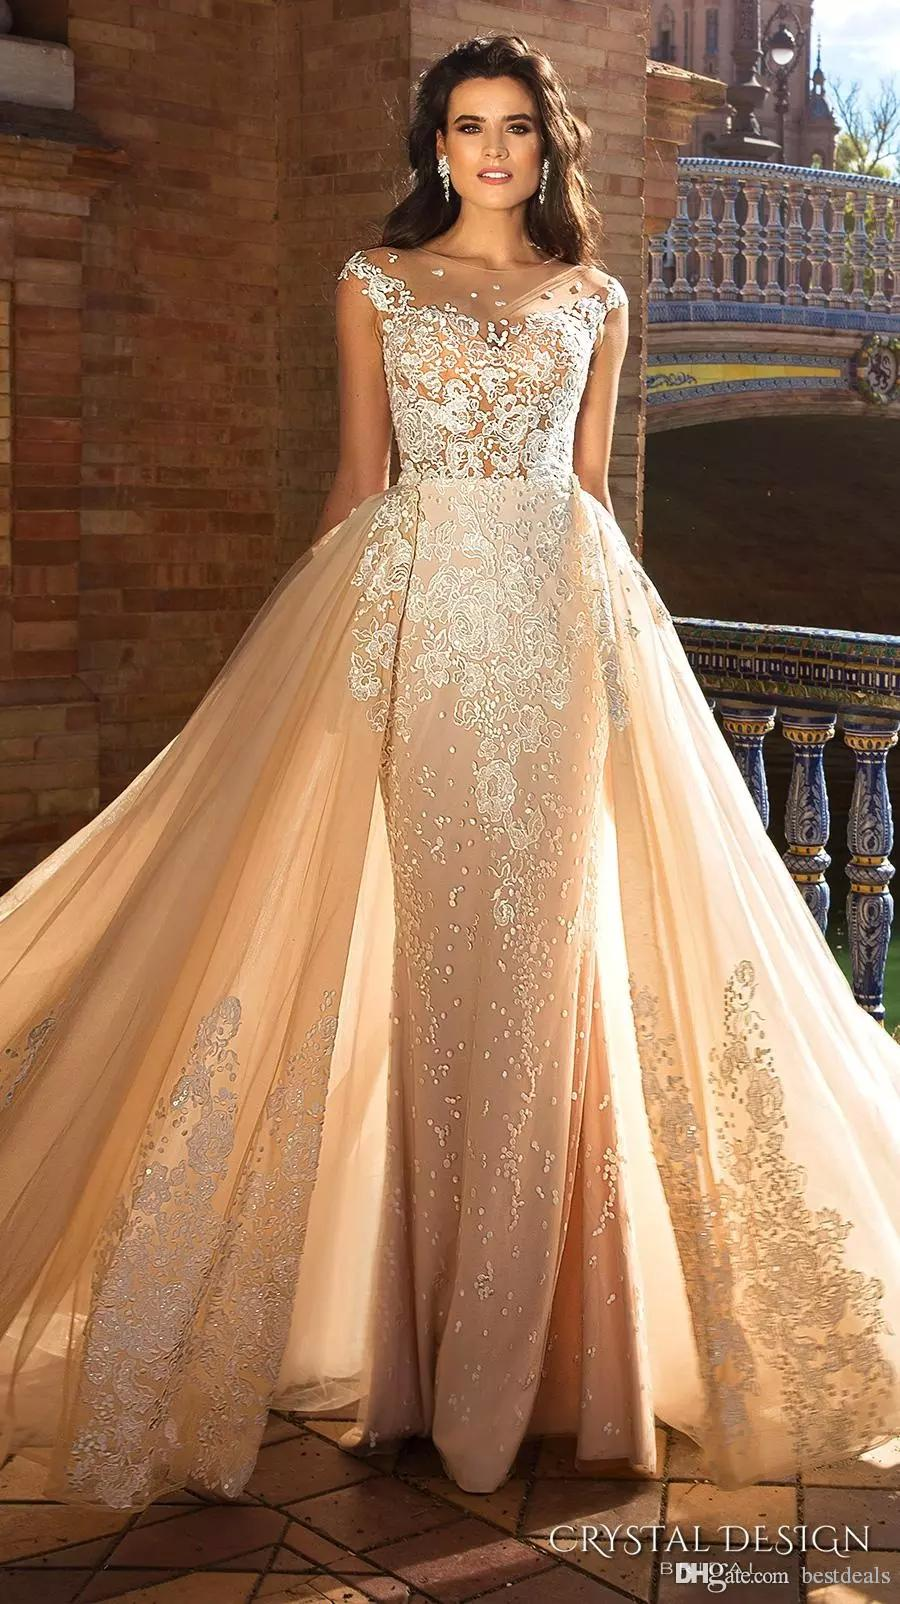 2017 Gorgeous Capped Sleeve Jewel Neck Heavily Embroidered Bodice Detachable Skirt Mermaid Wedding Dresses Low Back Long Train Bridal Gowns